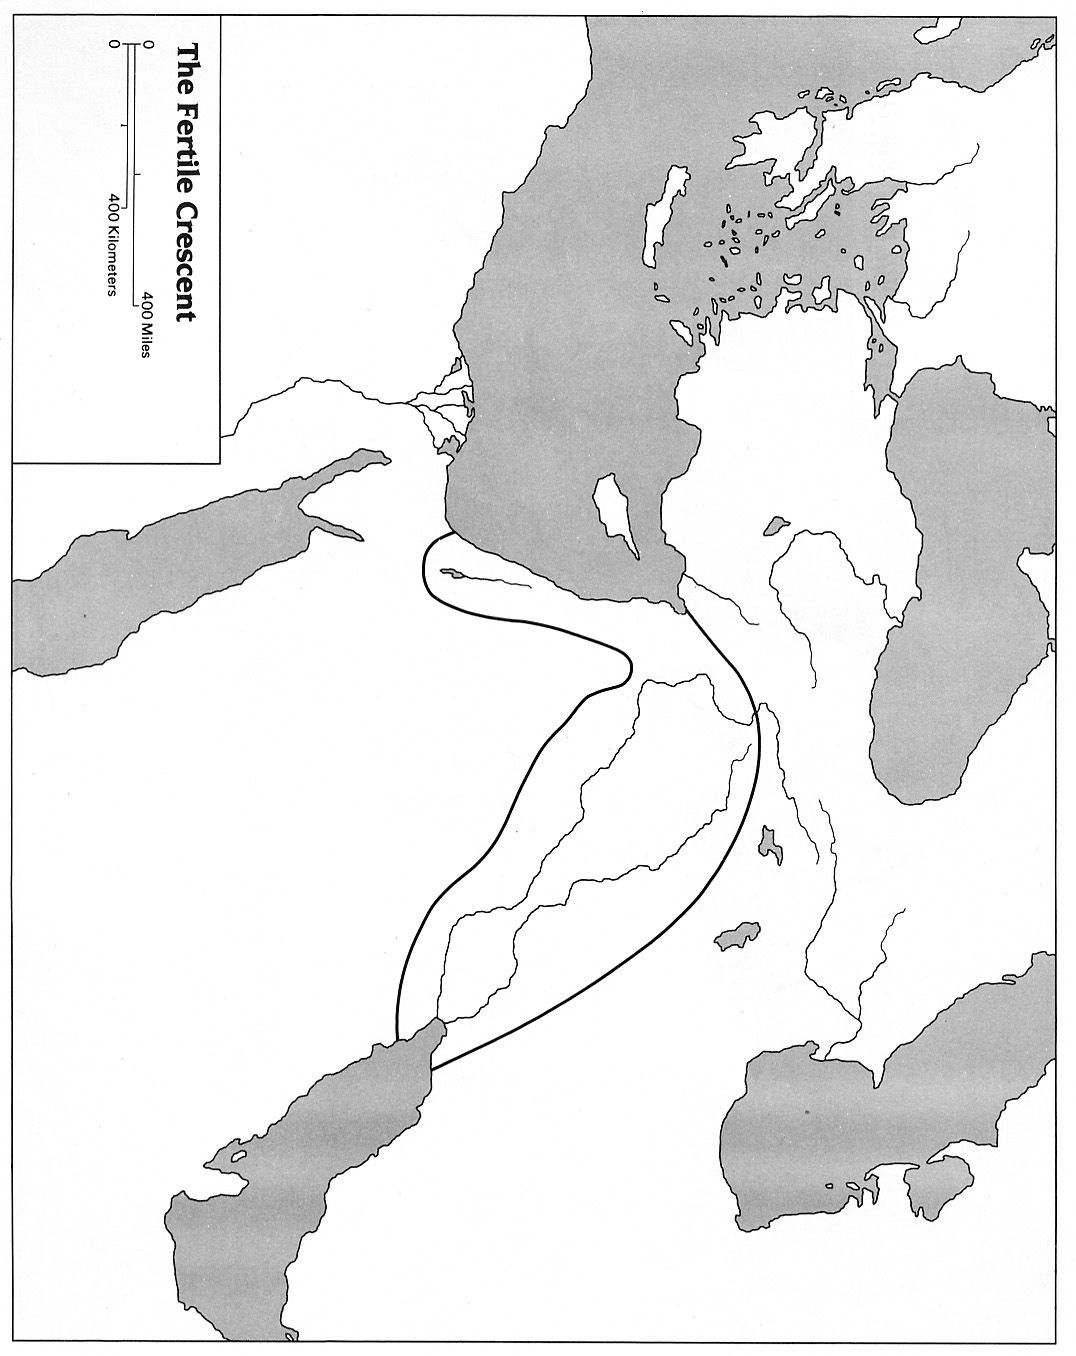 Blank Map Of Mesopotamia For Labeling   Mesopotamia For Kids   7Th - Free Printable Map Of Mesopotamia